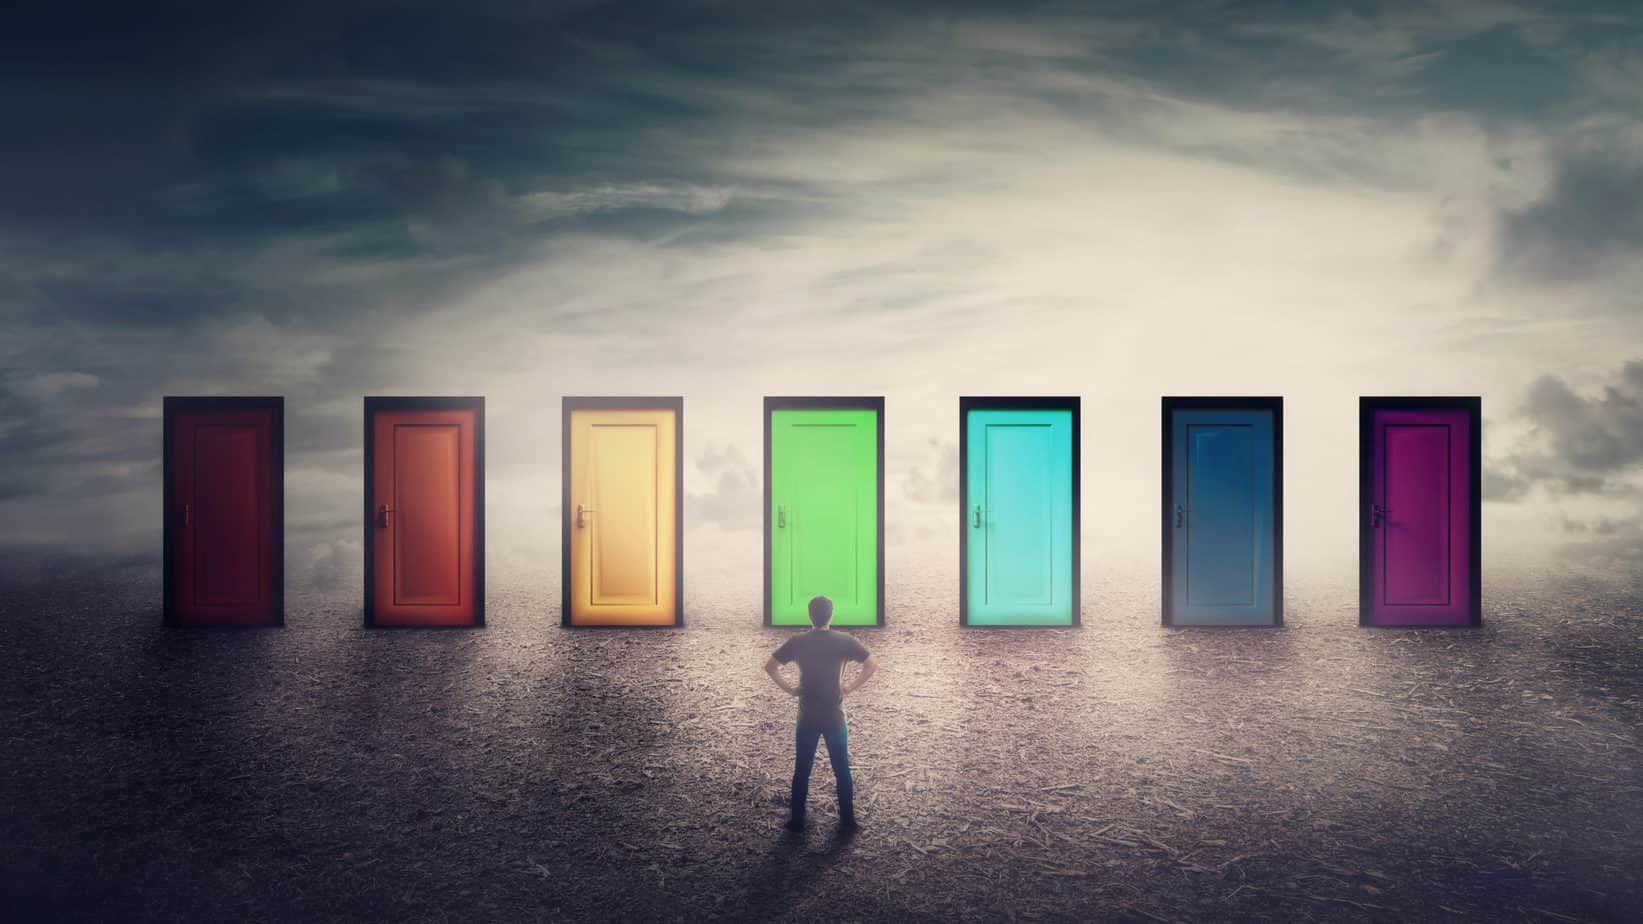 Man standing in front of a series of colored doors. He has to make a choice.